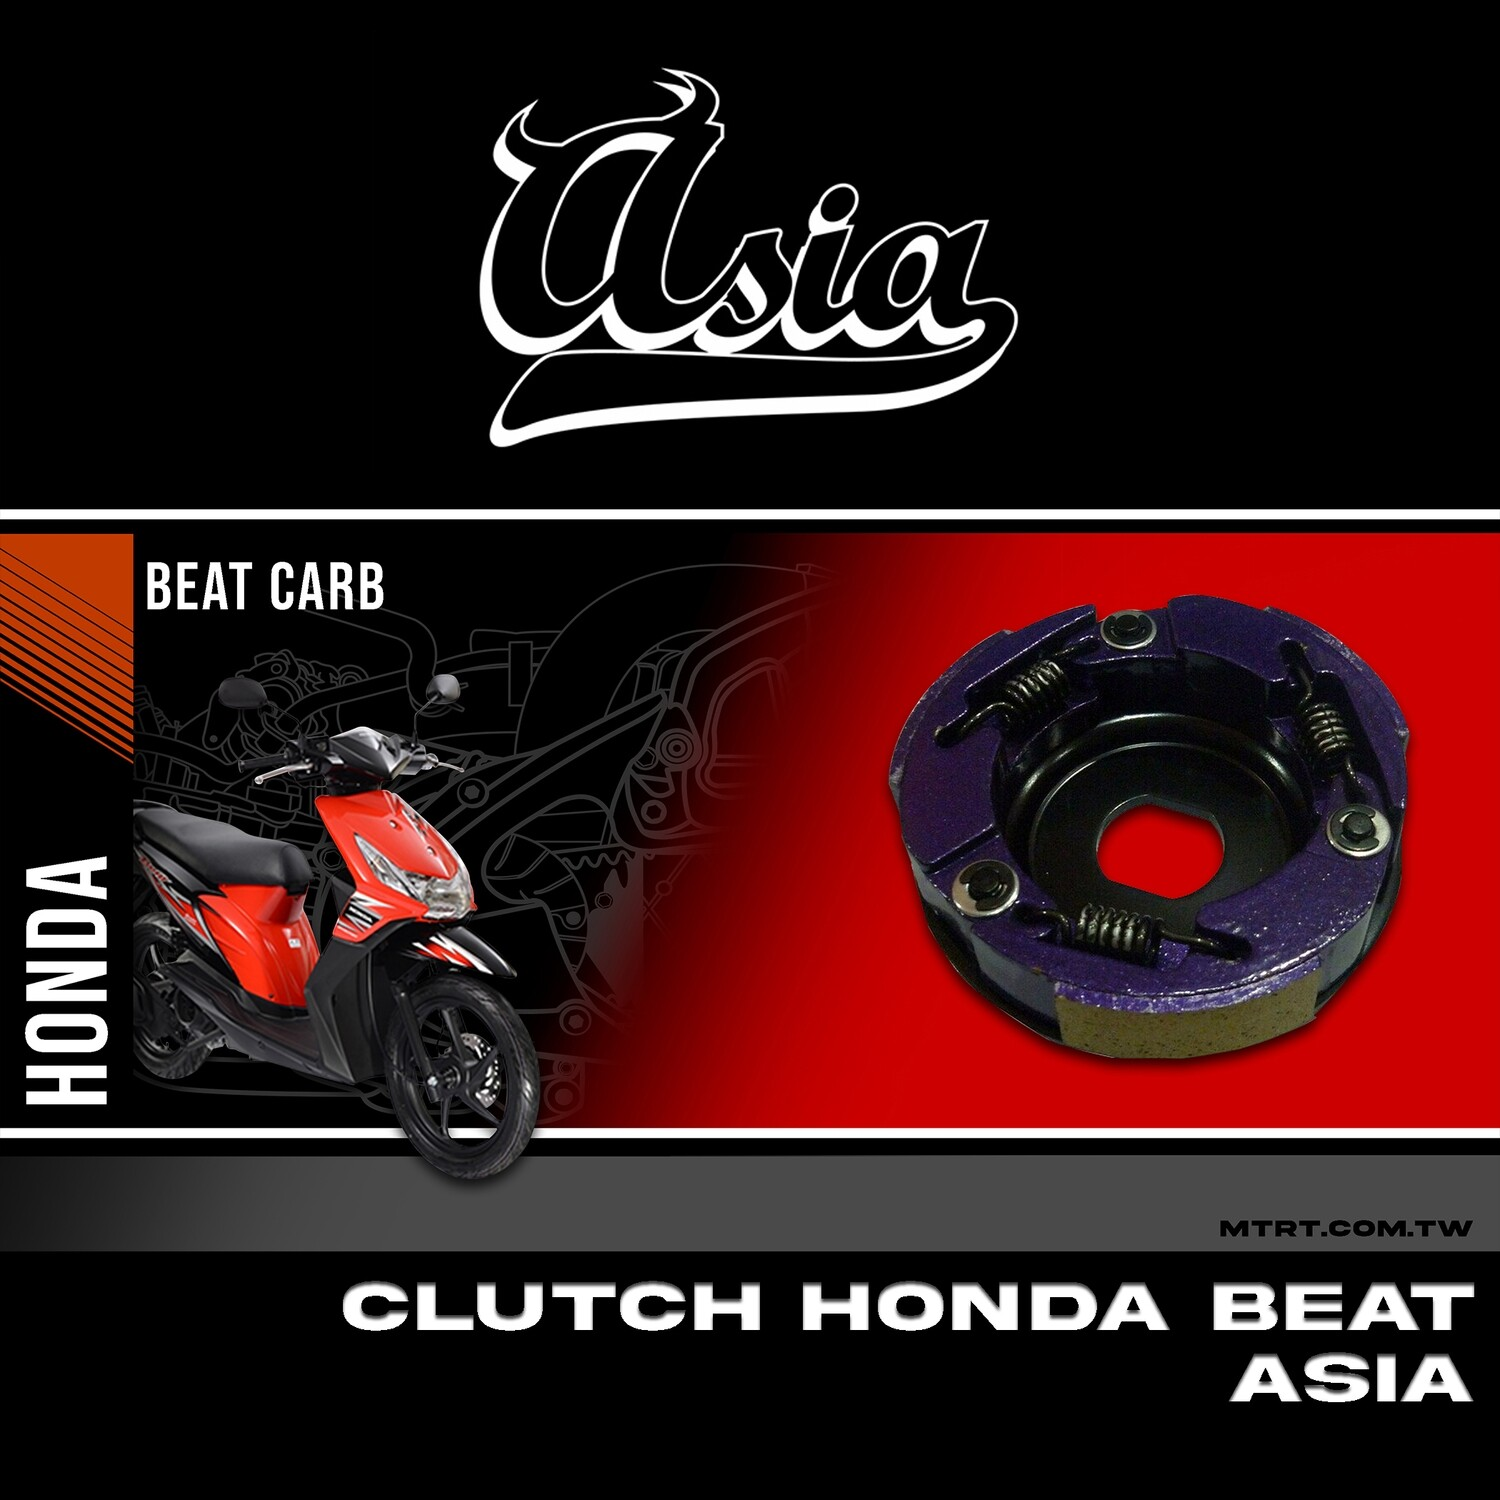 CLUTCH HONDA BEAT ASIA Main